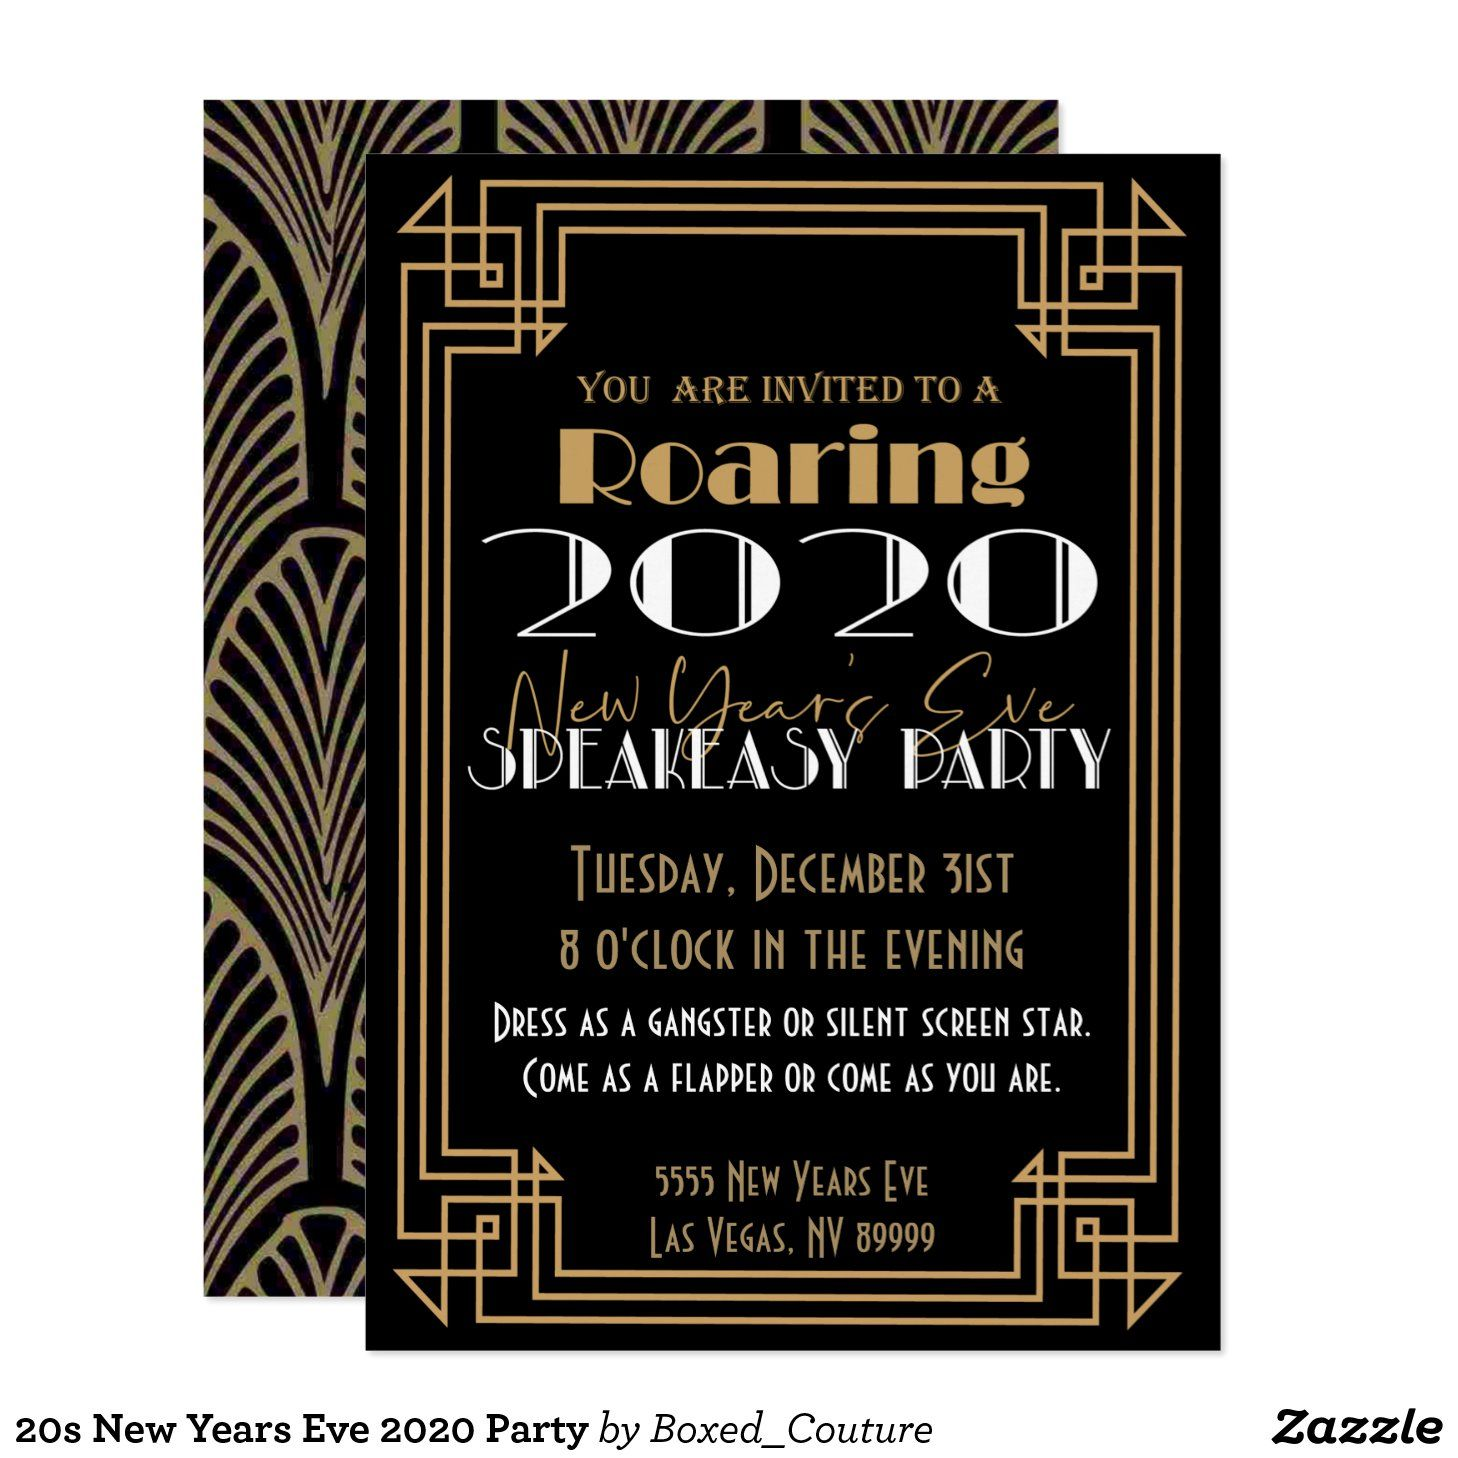 20s New Years Eve 2020 Party Invitation in